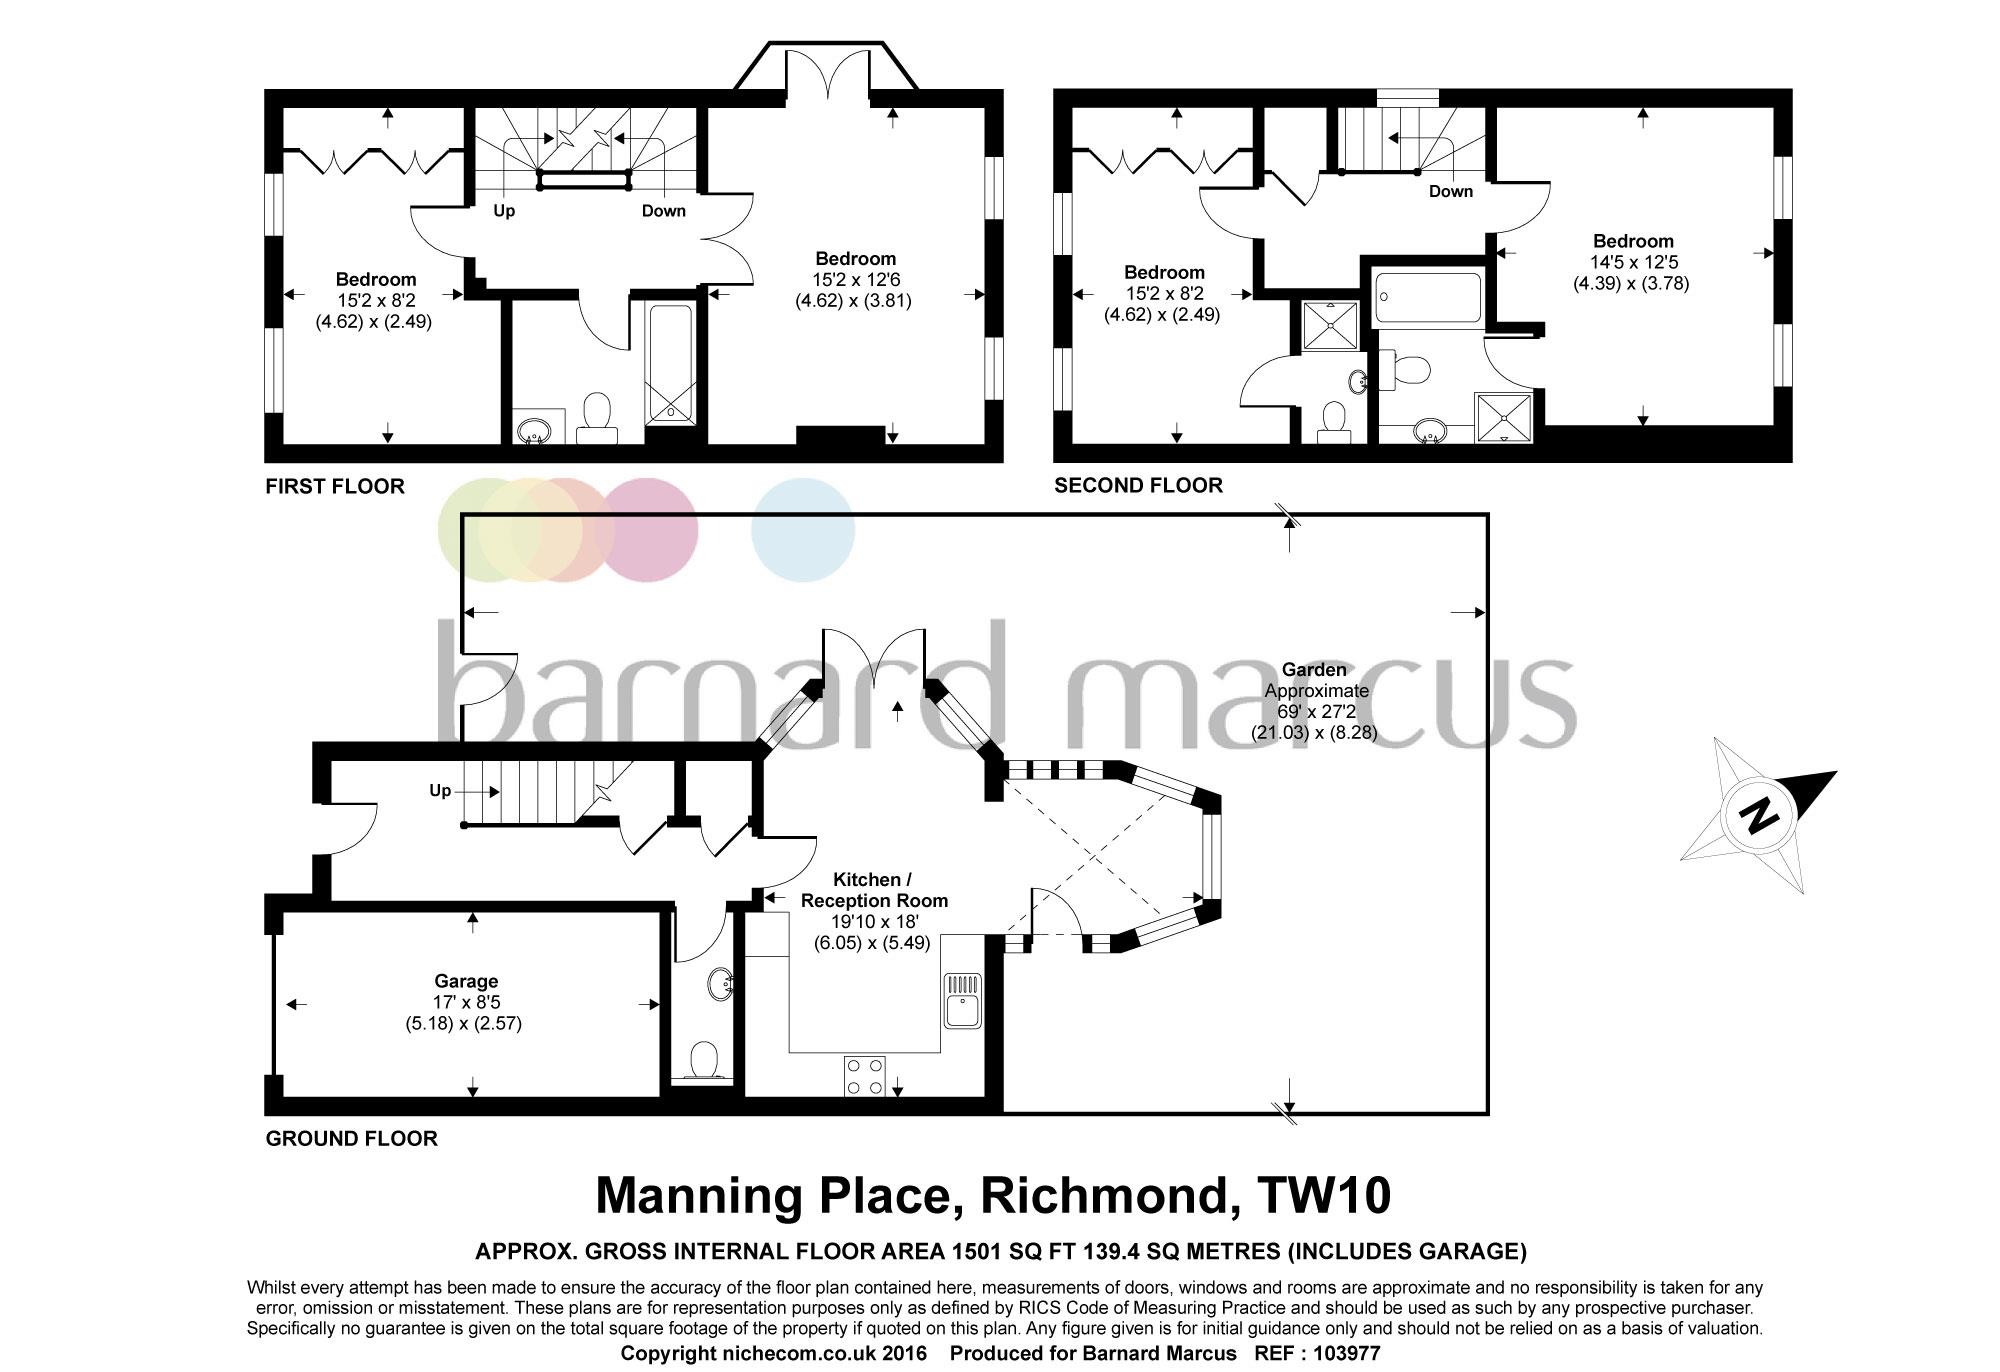 Manning place richmond tw10 3 bedroom property to rent for 101 richmond floor plans